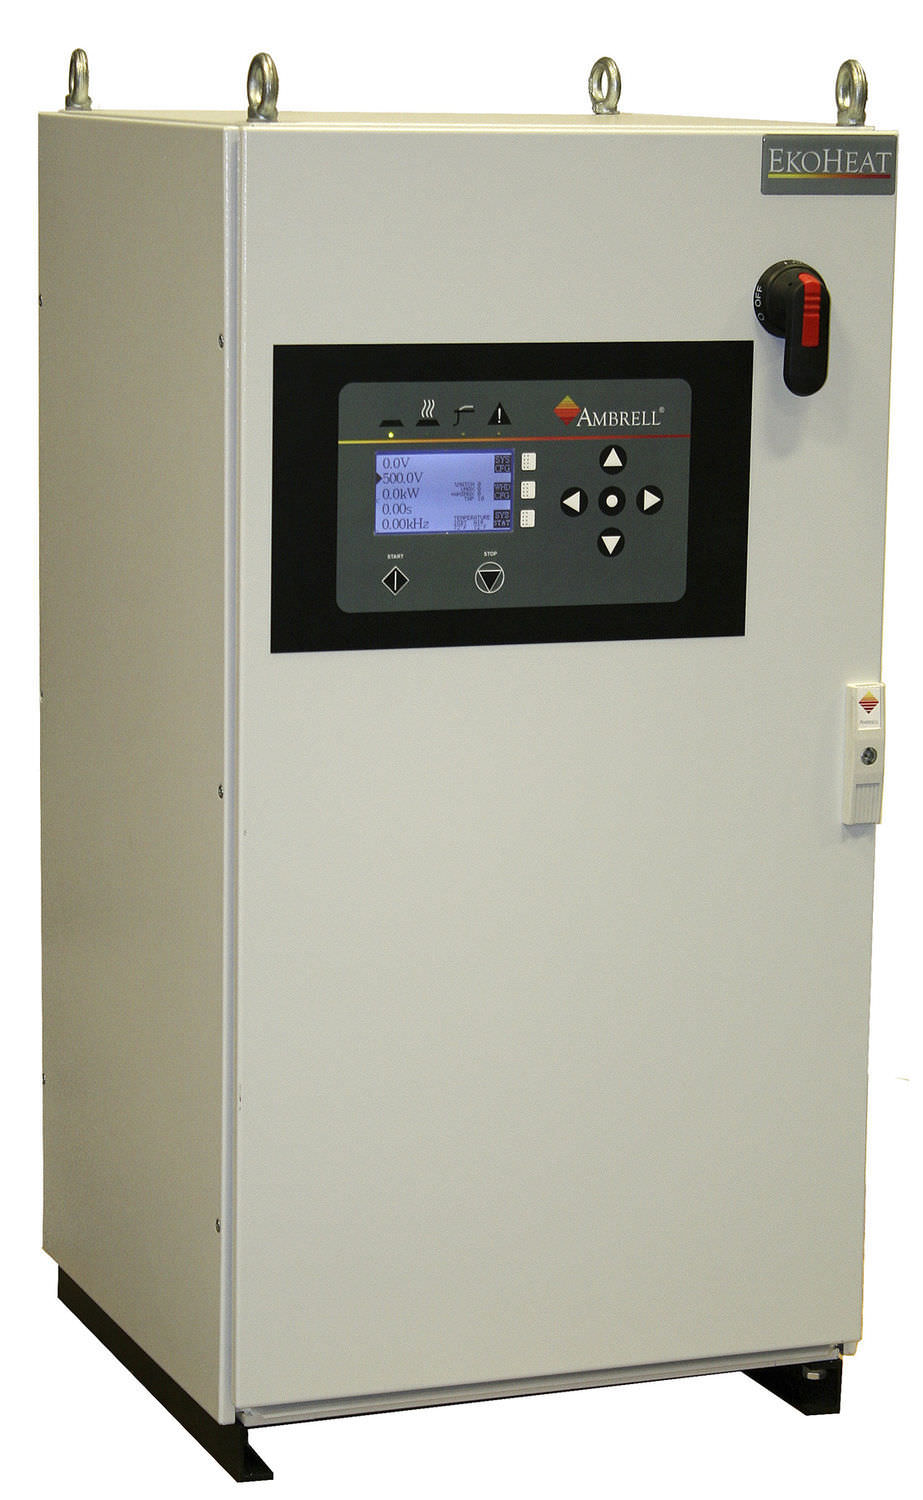 EKOHEAT 75/10 Induction heater 75 kW, 5 – 15 kHz